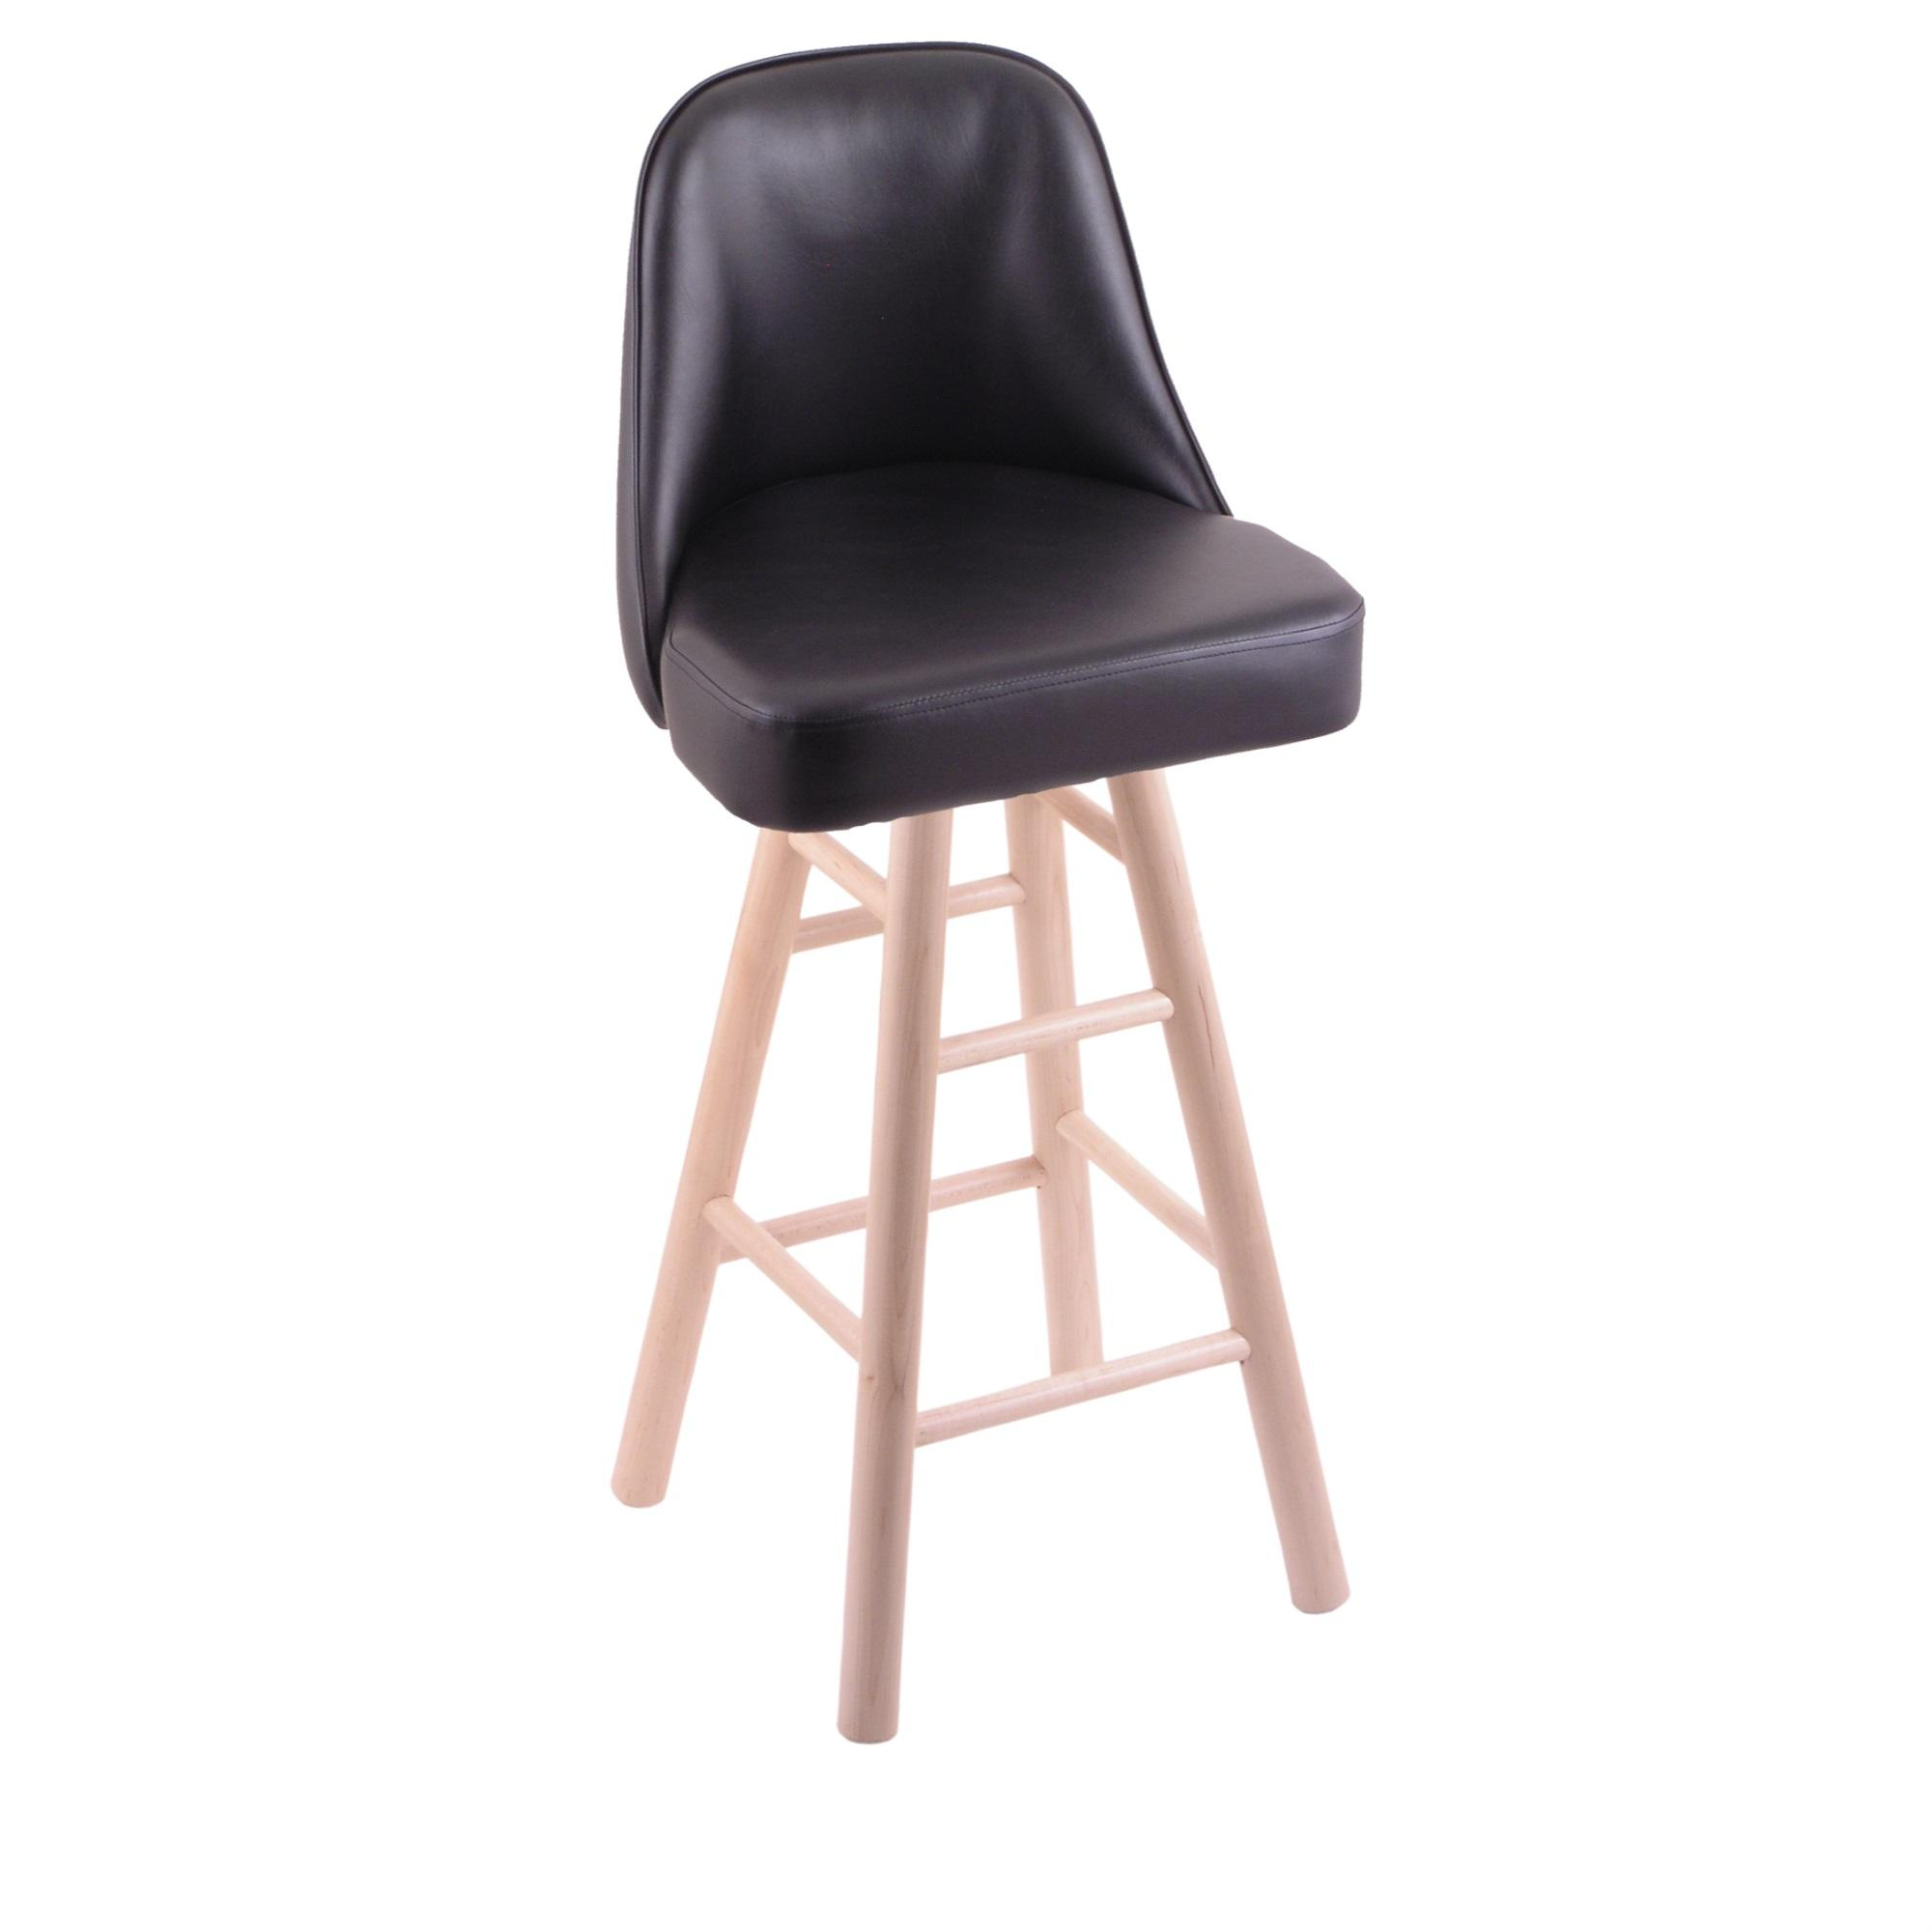 Grizzly Bar Stool with Smooth Maple Legs, Natural Finish, and 360 Swivel